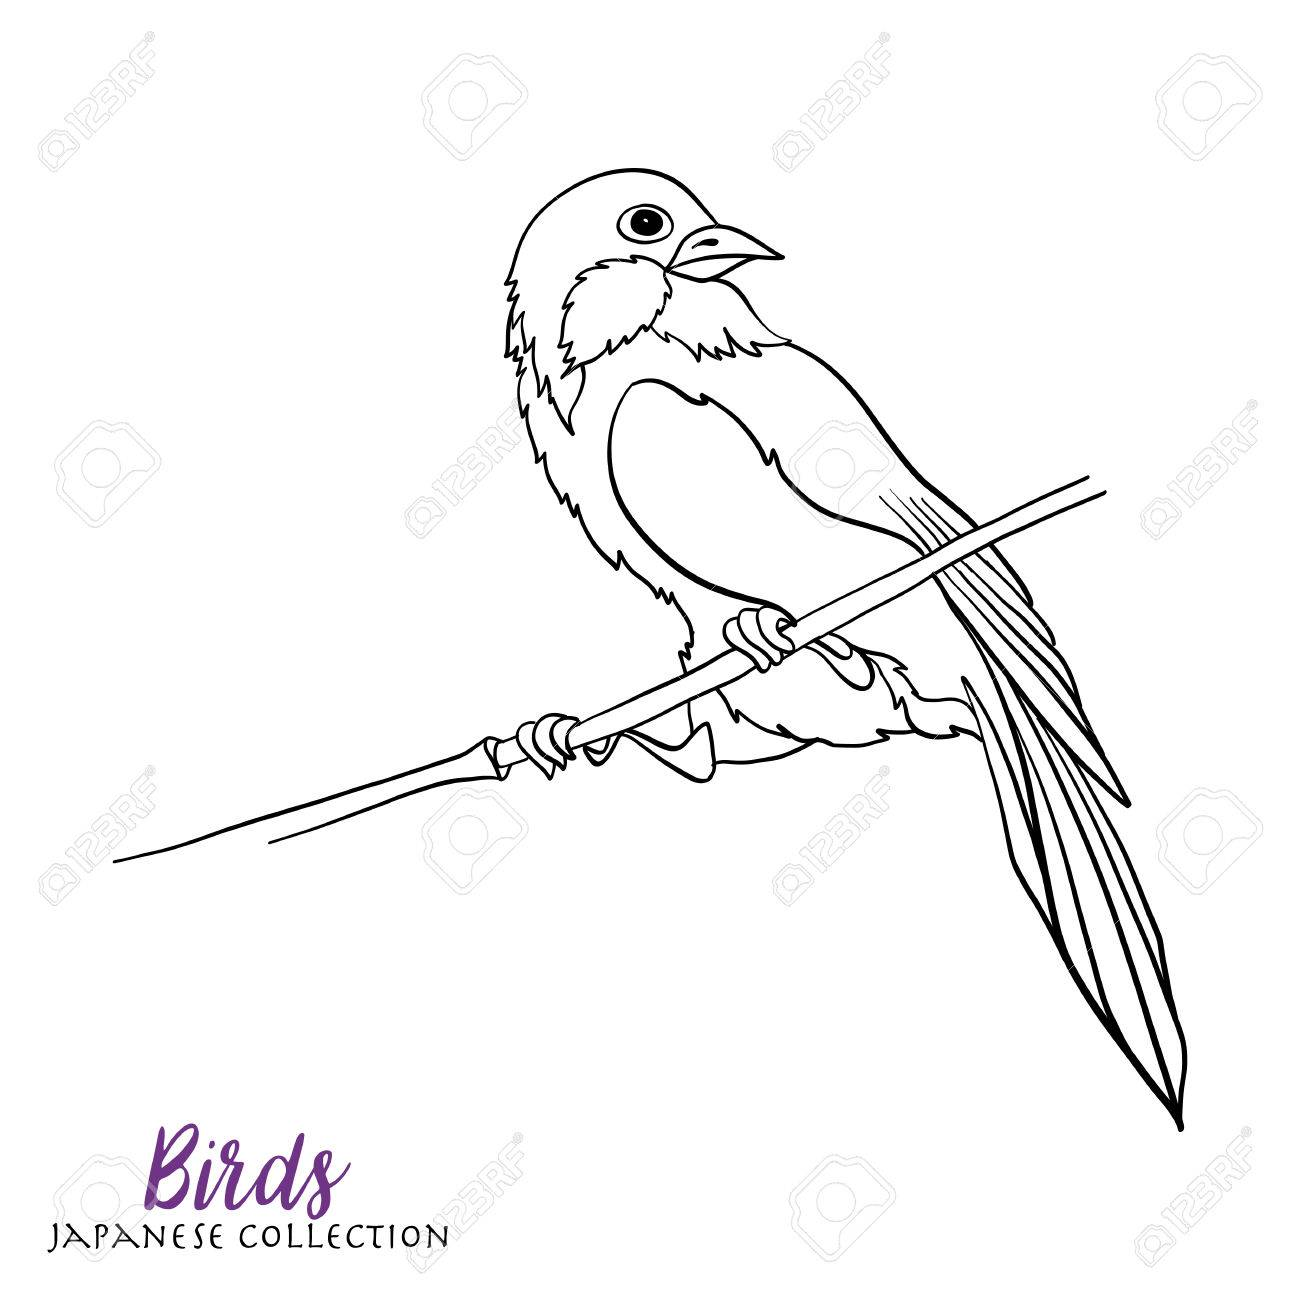 1300x1300 Japanese Birds. Stock Line Vector Illustration. Coloring Book